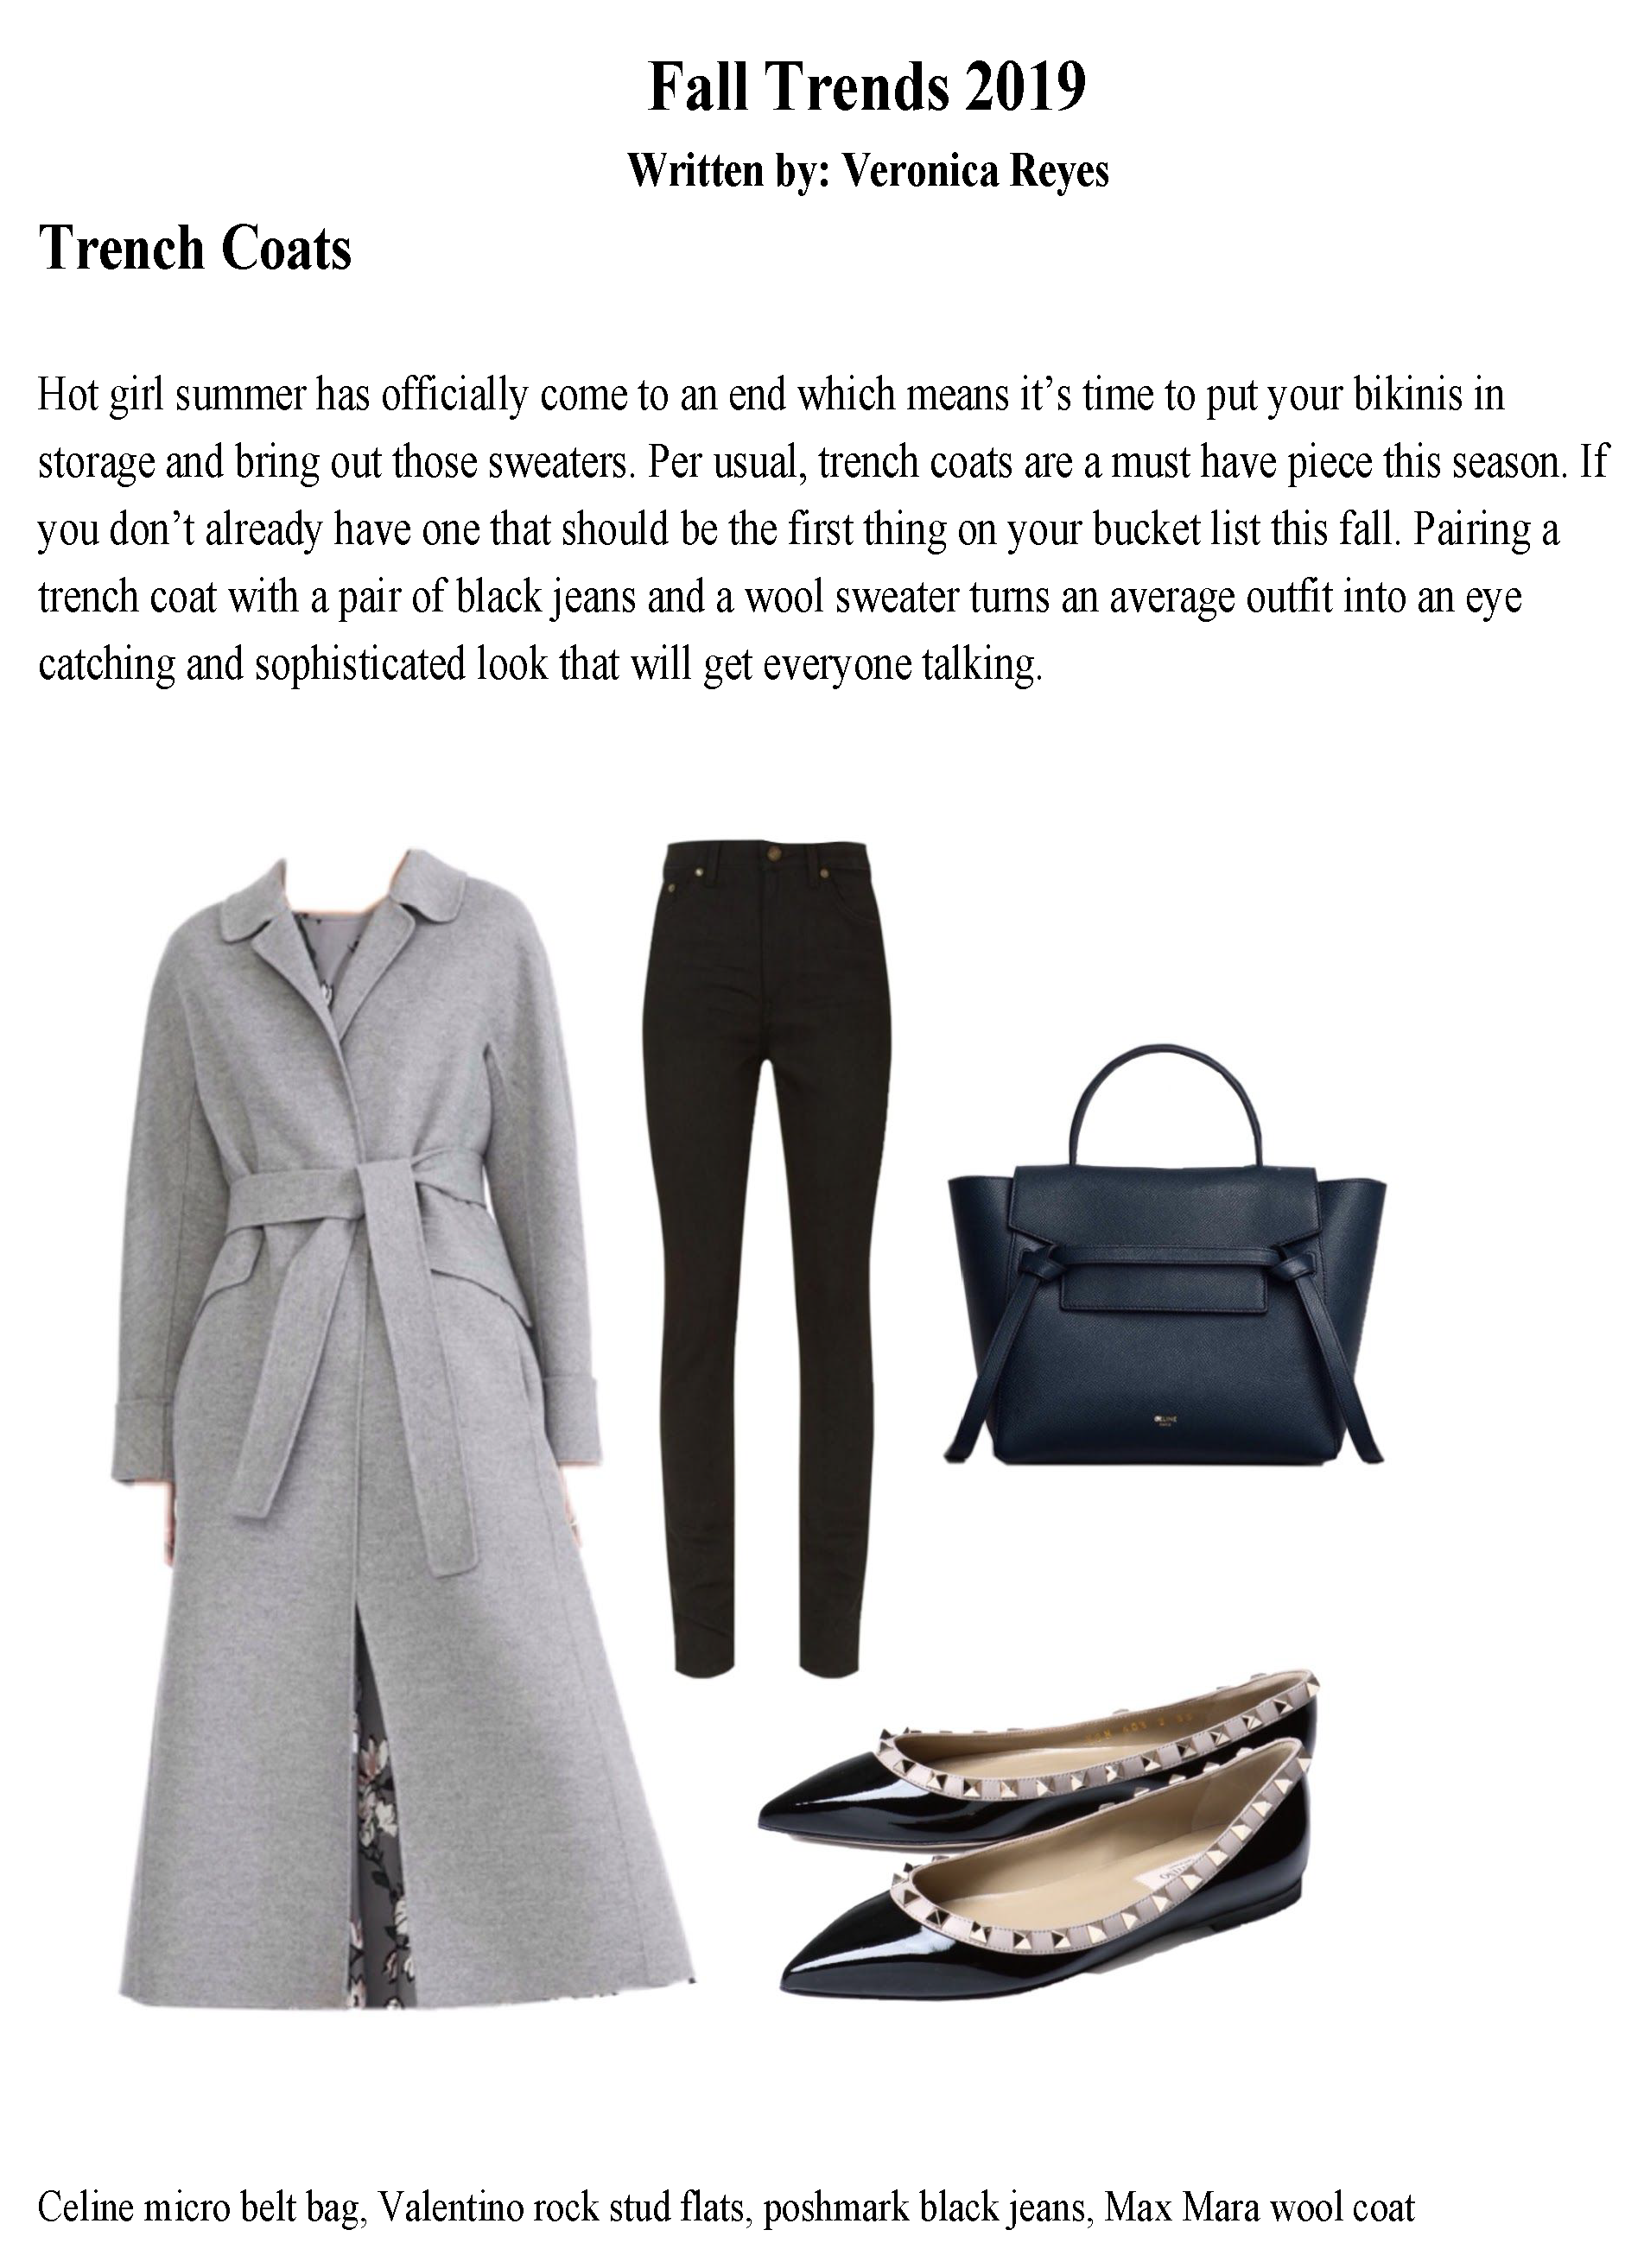 Fall trends_Page_1.png